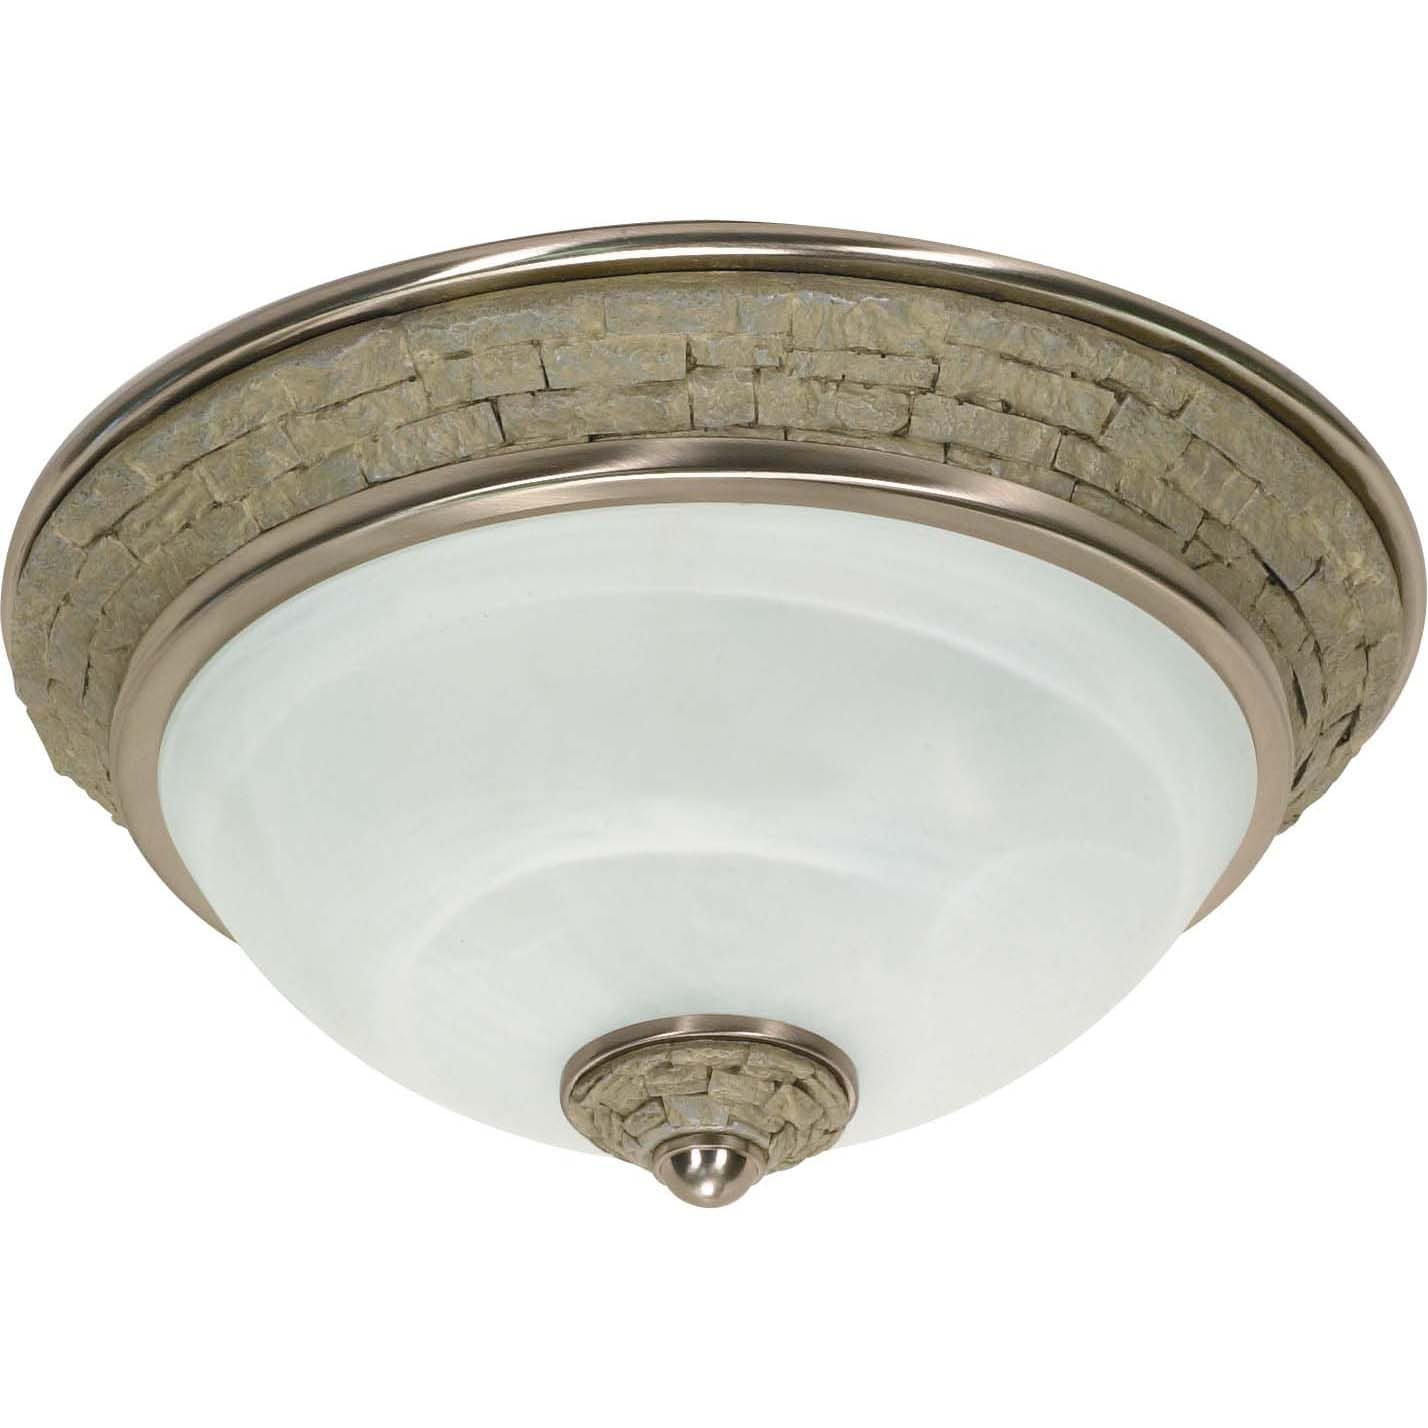 Rockport Milano Brushed Nickel Alabaster Glass 2-light Flush Dome Fixture - Thumbnail 0